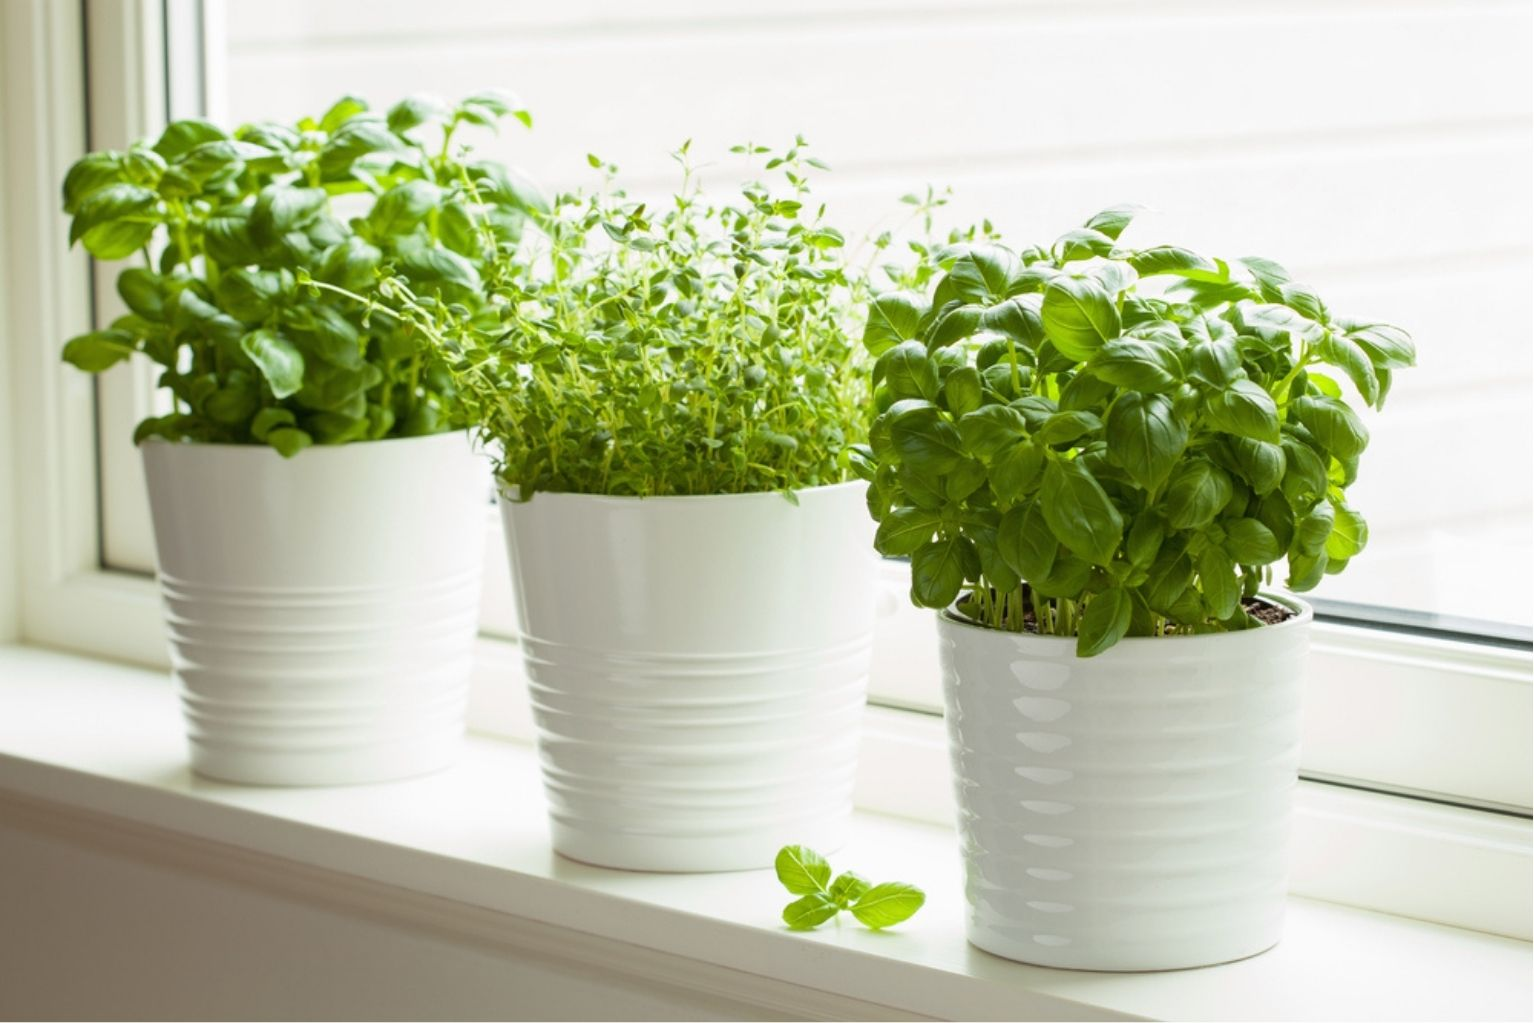 Basil, thyme, and mint plants sitting on a windowsill in white pots.